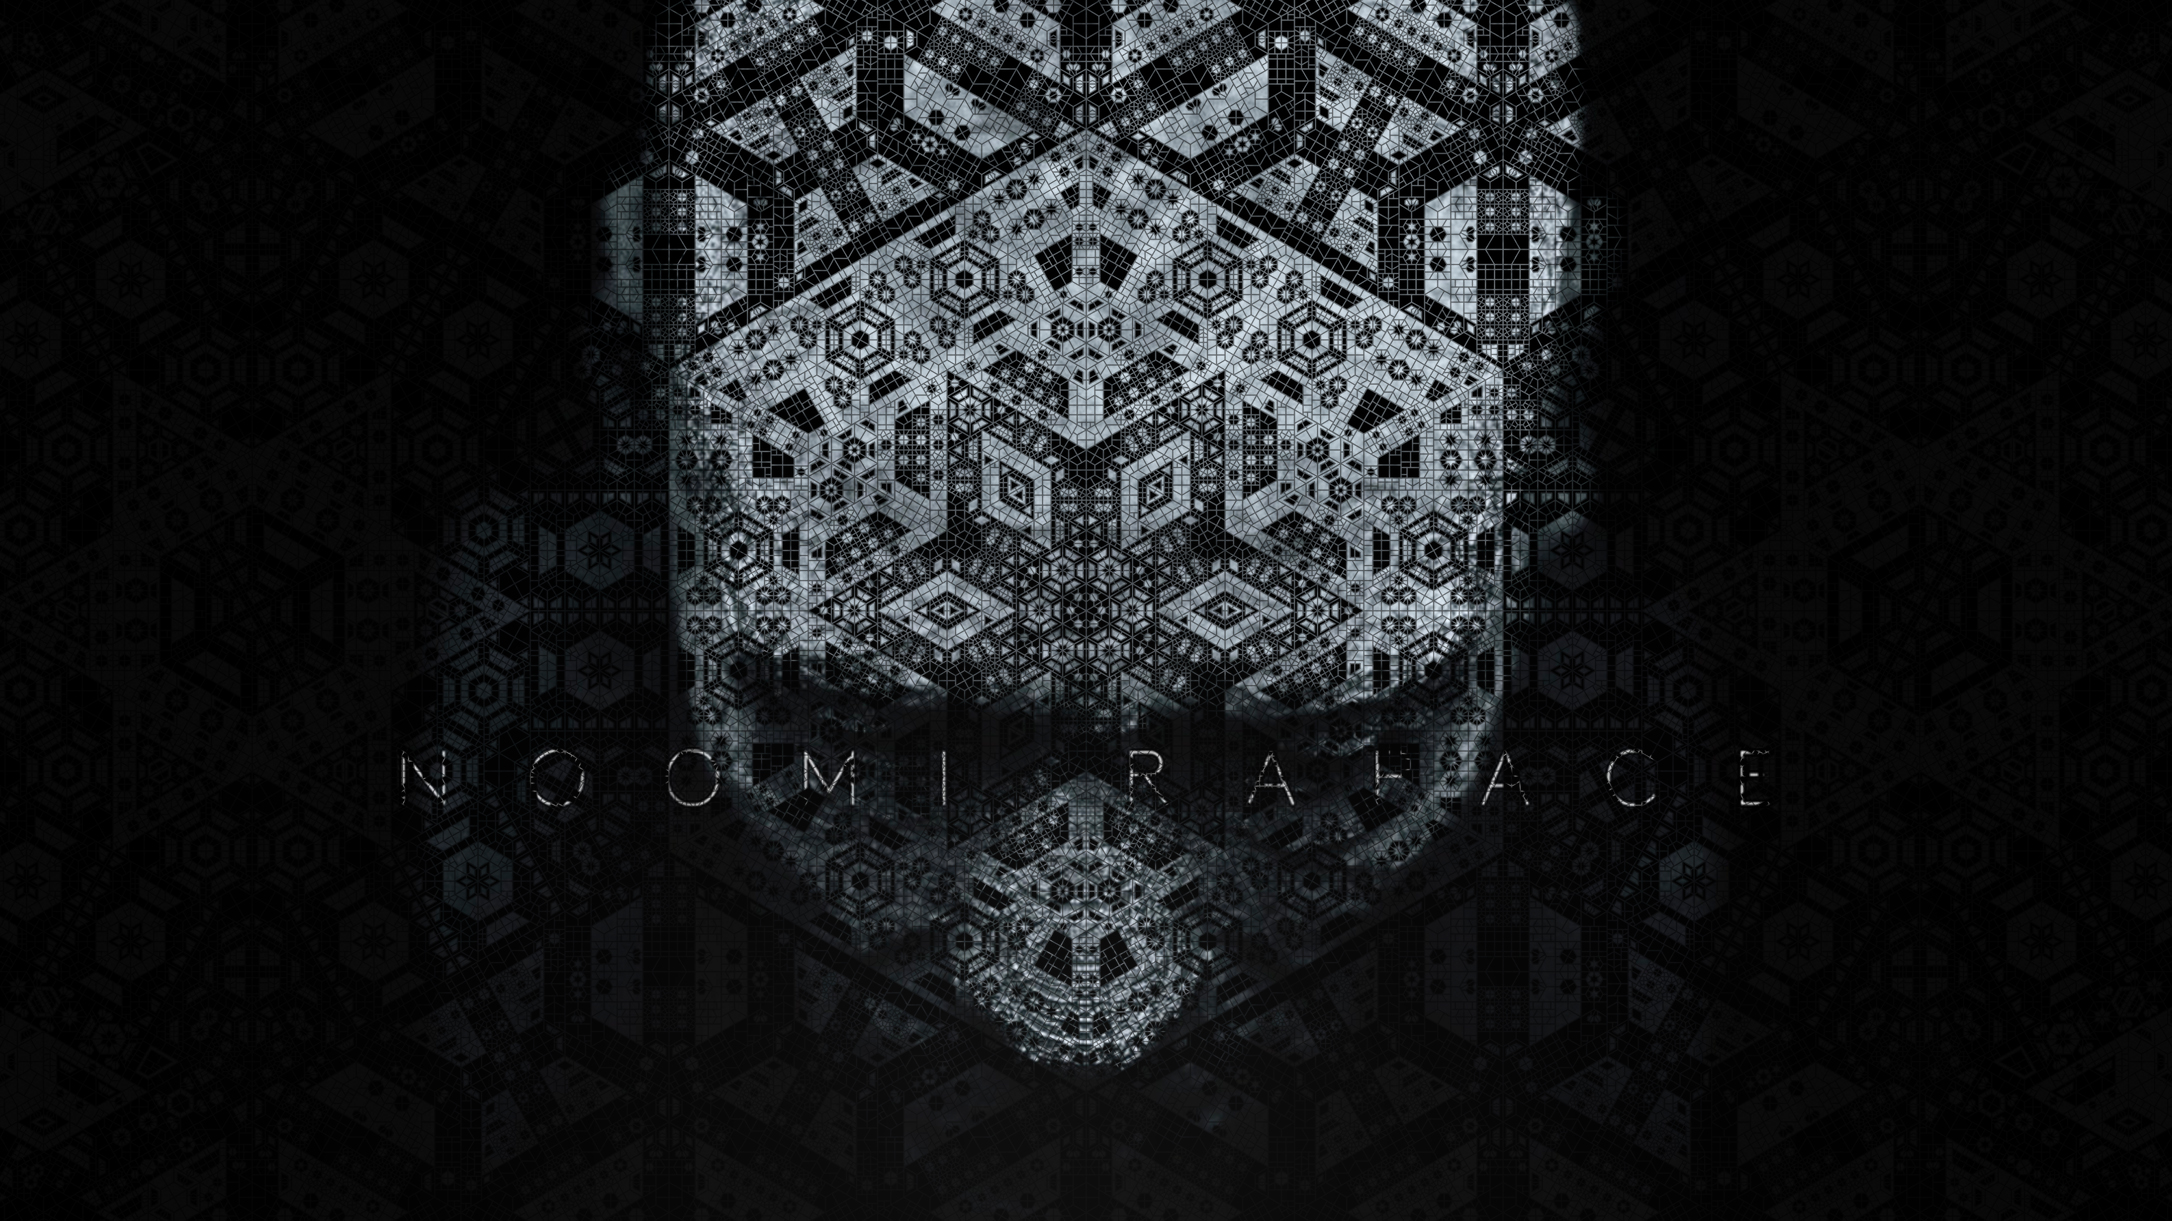 Original Generative artwork used for the overlay by  Fleen